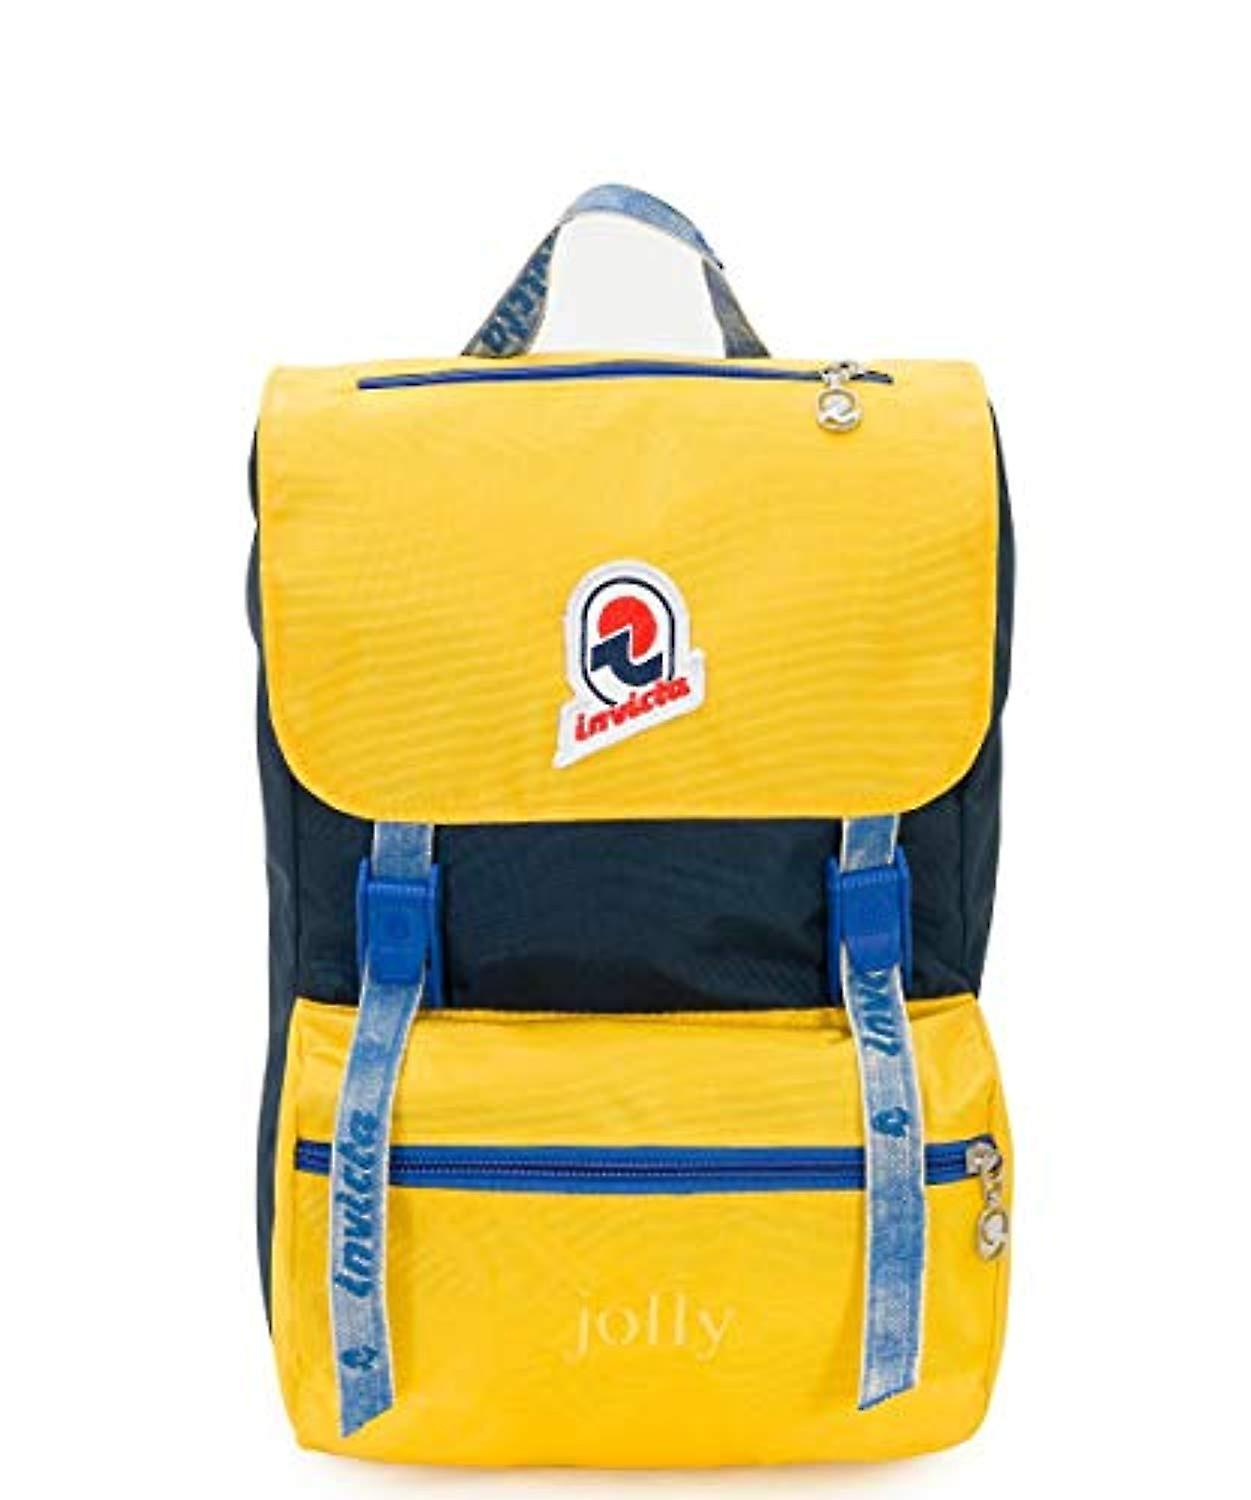 detailed images great fit official photos Invicta Backpack Jolly Vintage S Casual Backpack - 33 cm - 15 liters -  Yellow